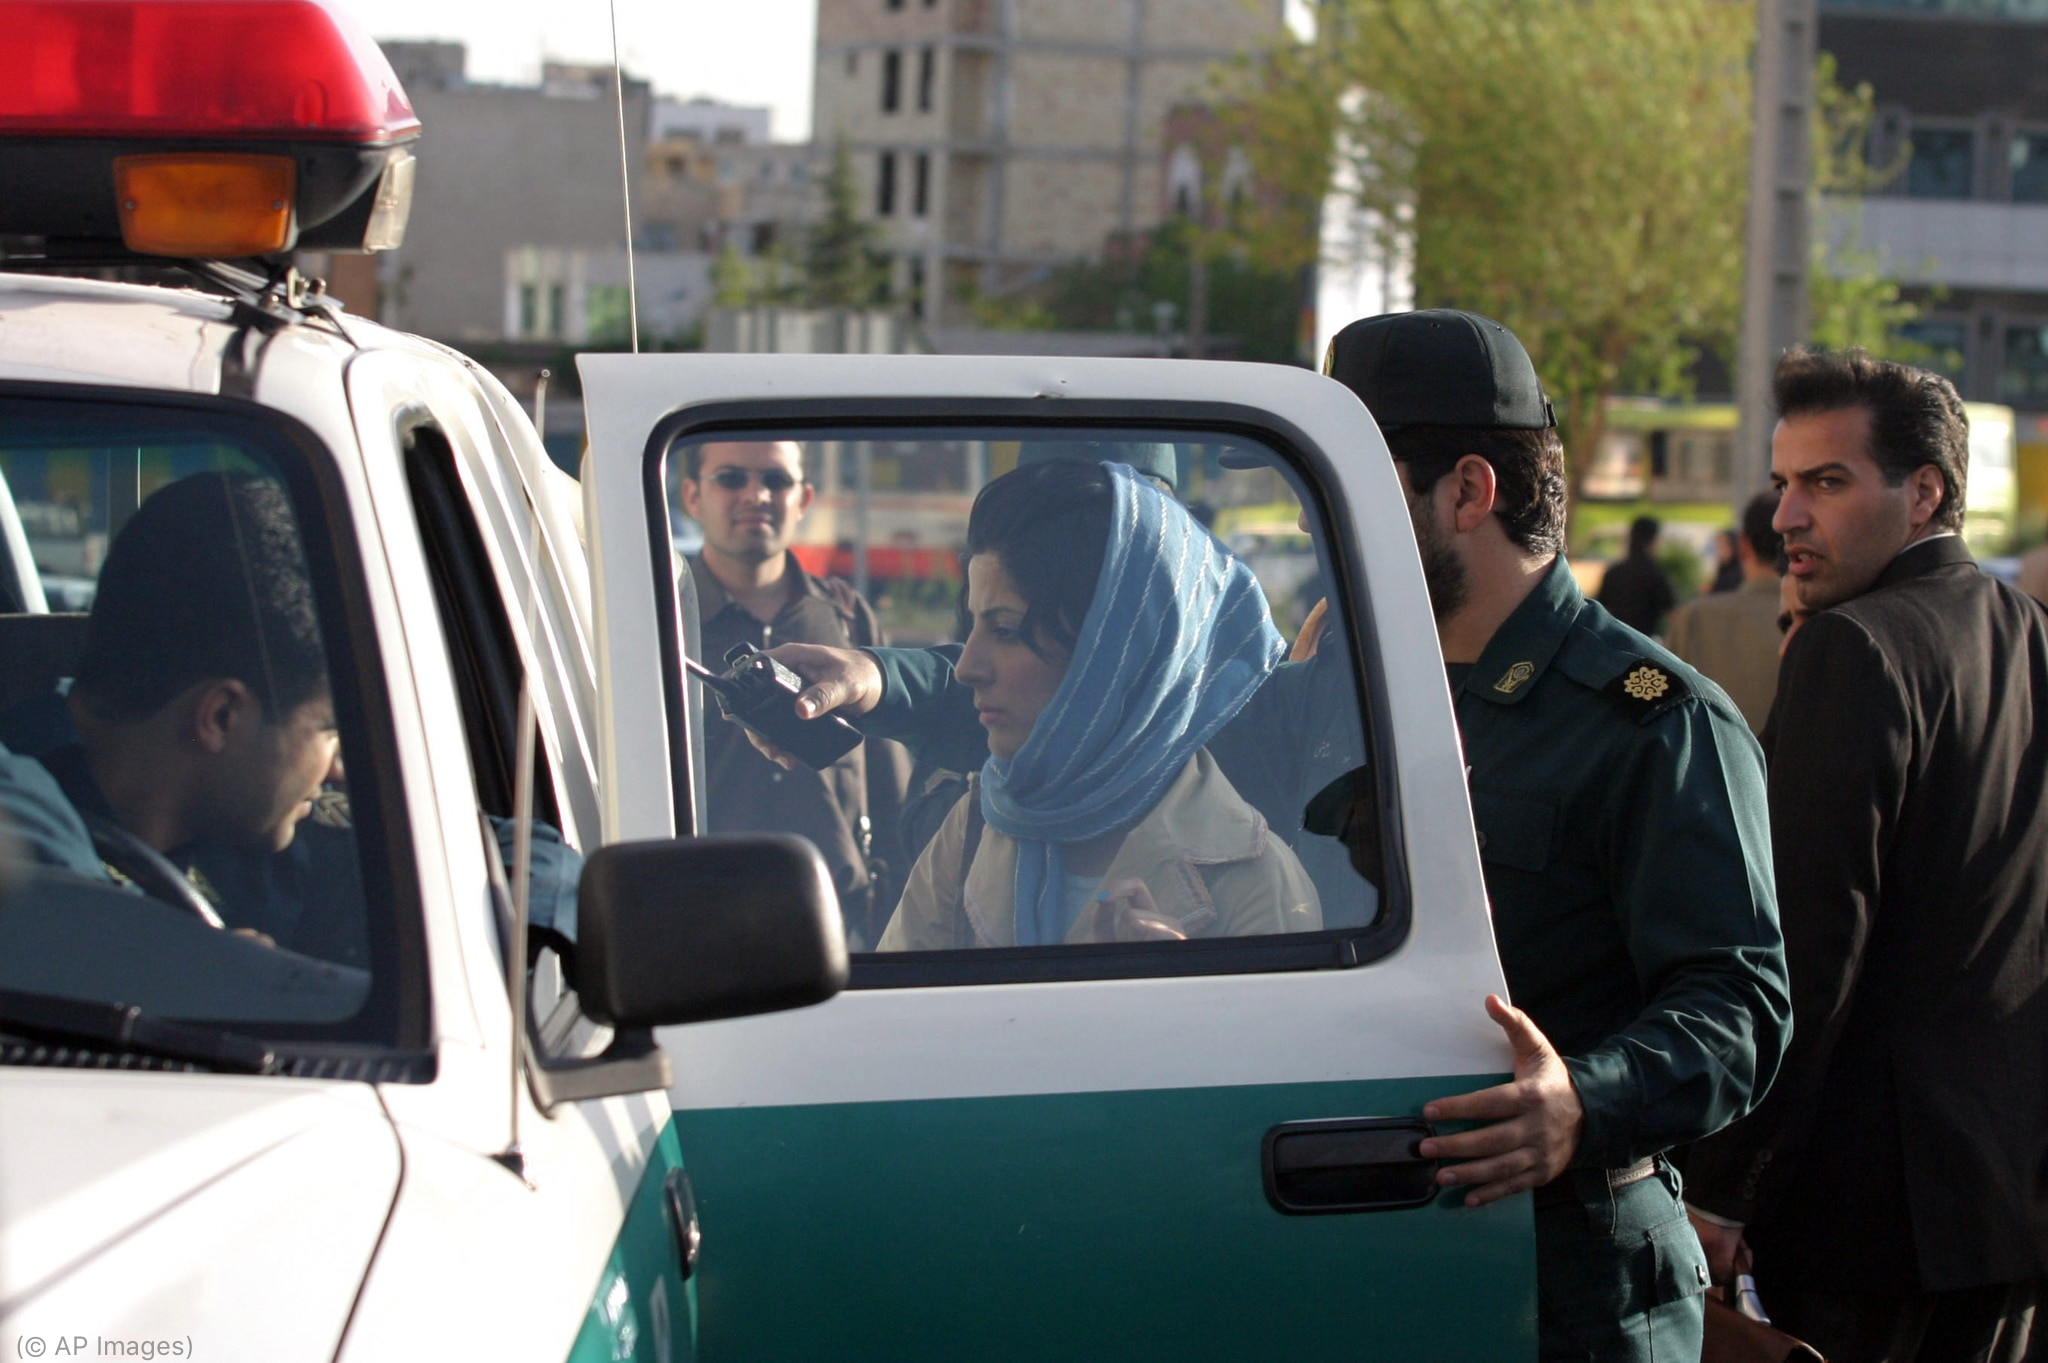 Woman wearing headscarf being put into police vehicle (© AP Images)